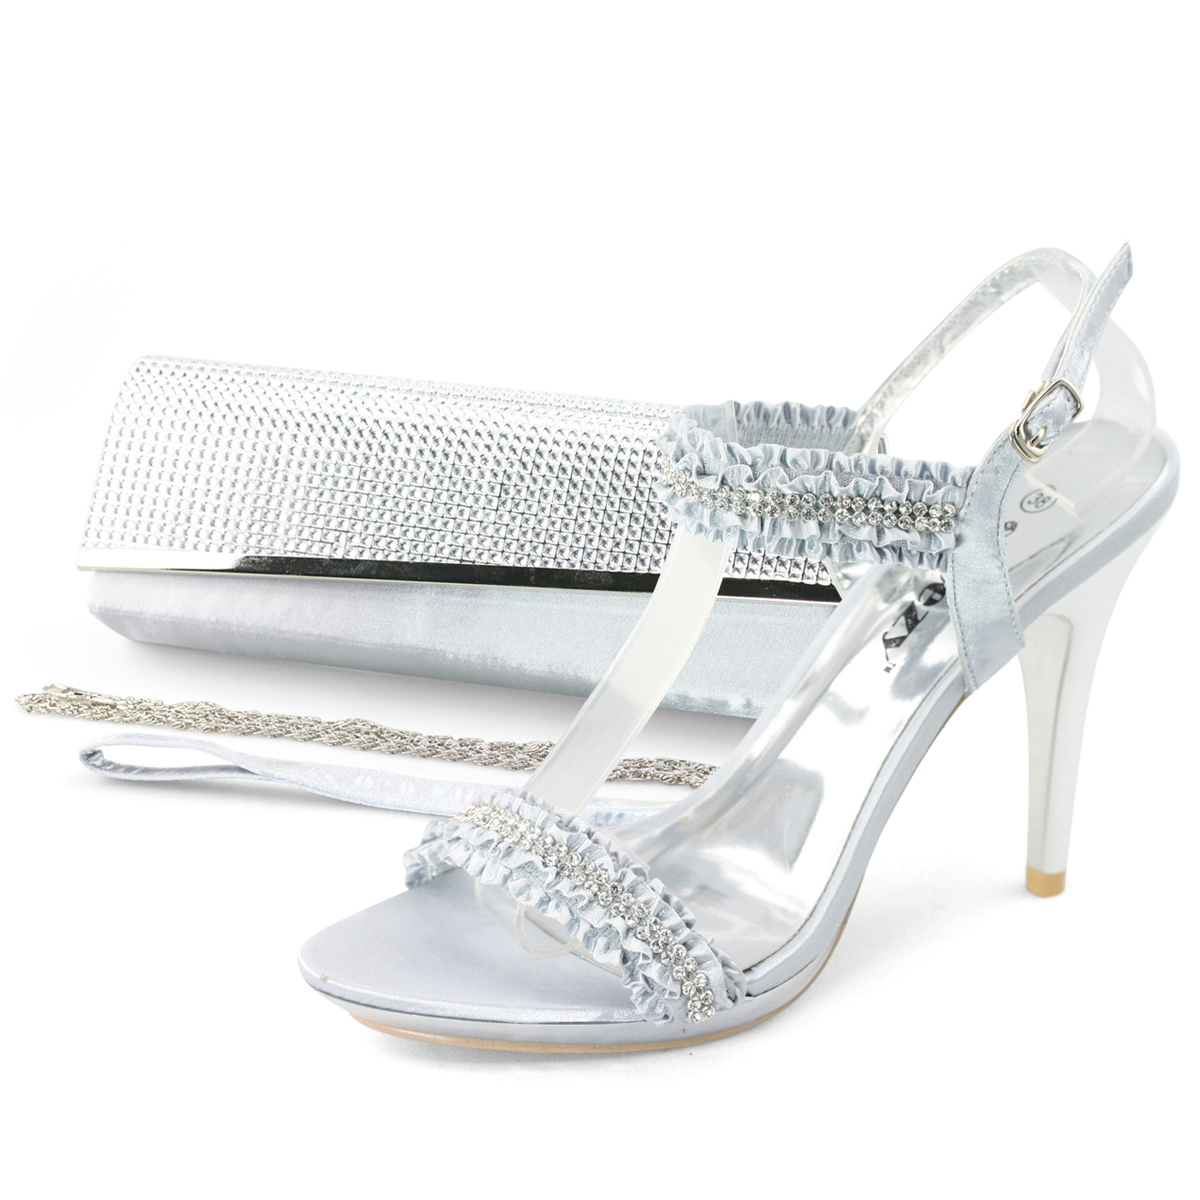 Silver sandals or shoes - Image Is Loading Ladies Silver Diamond Ruffle Sandals Evening Shoes Amp